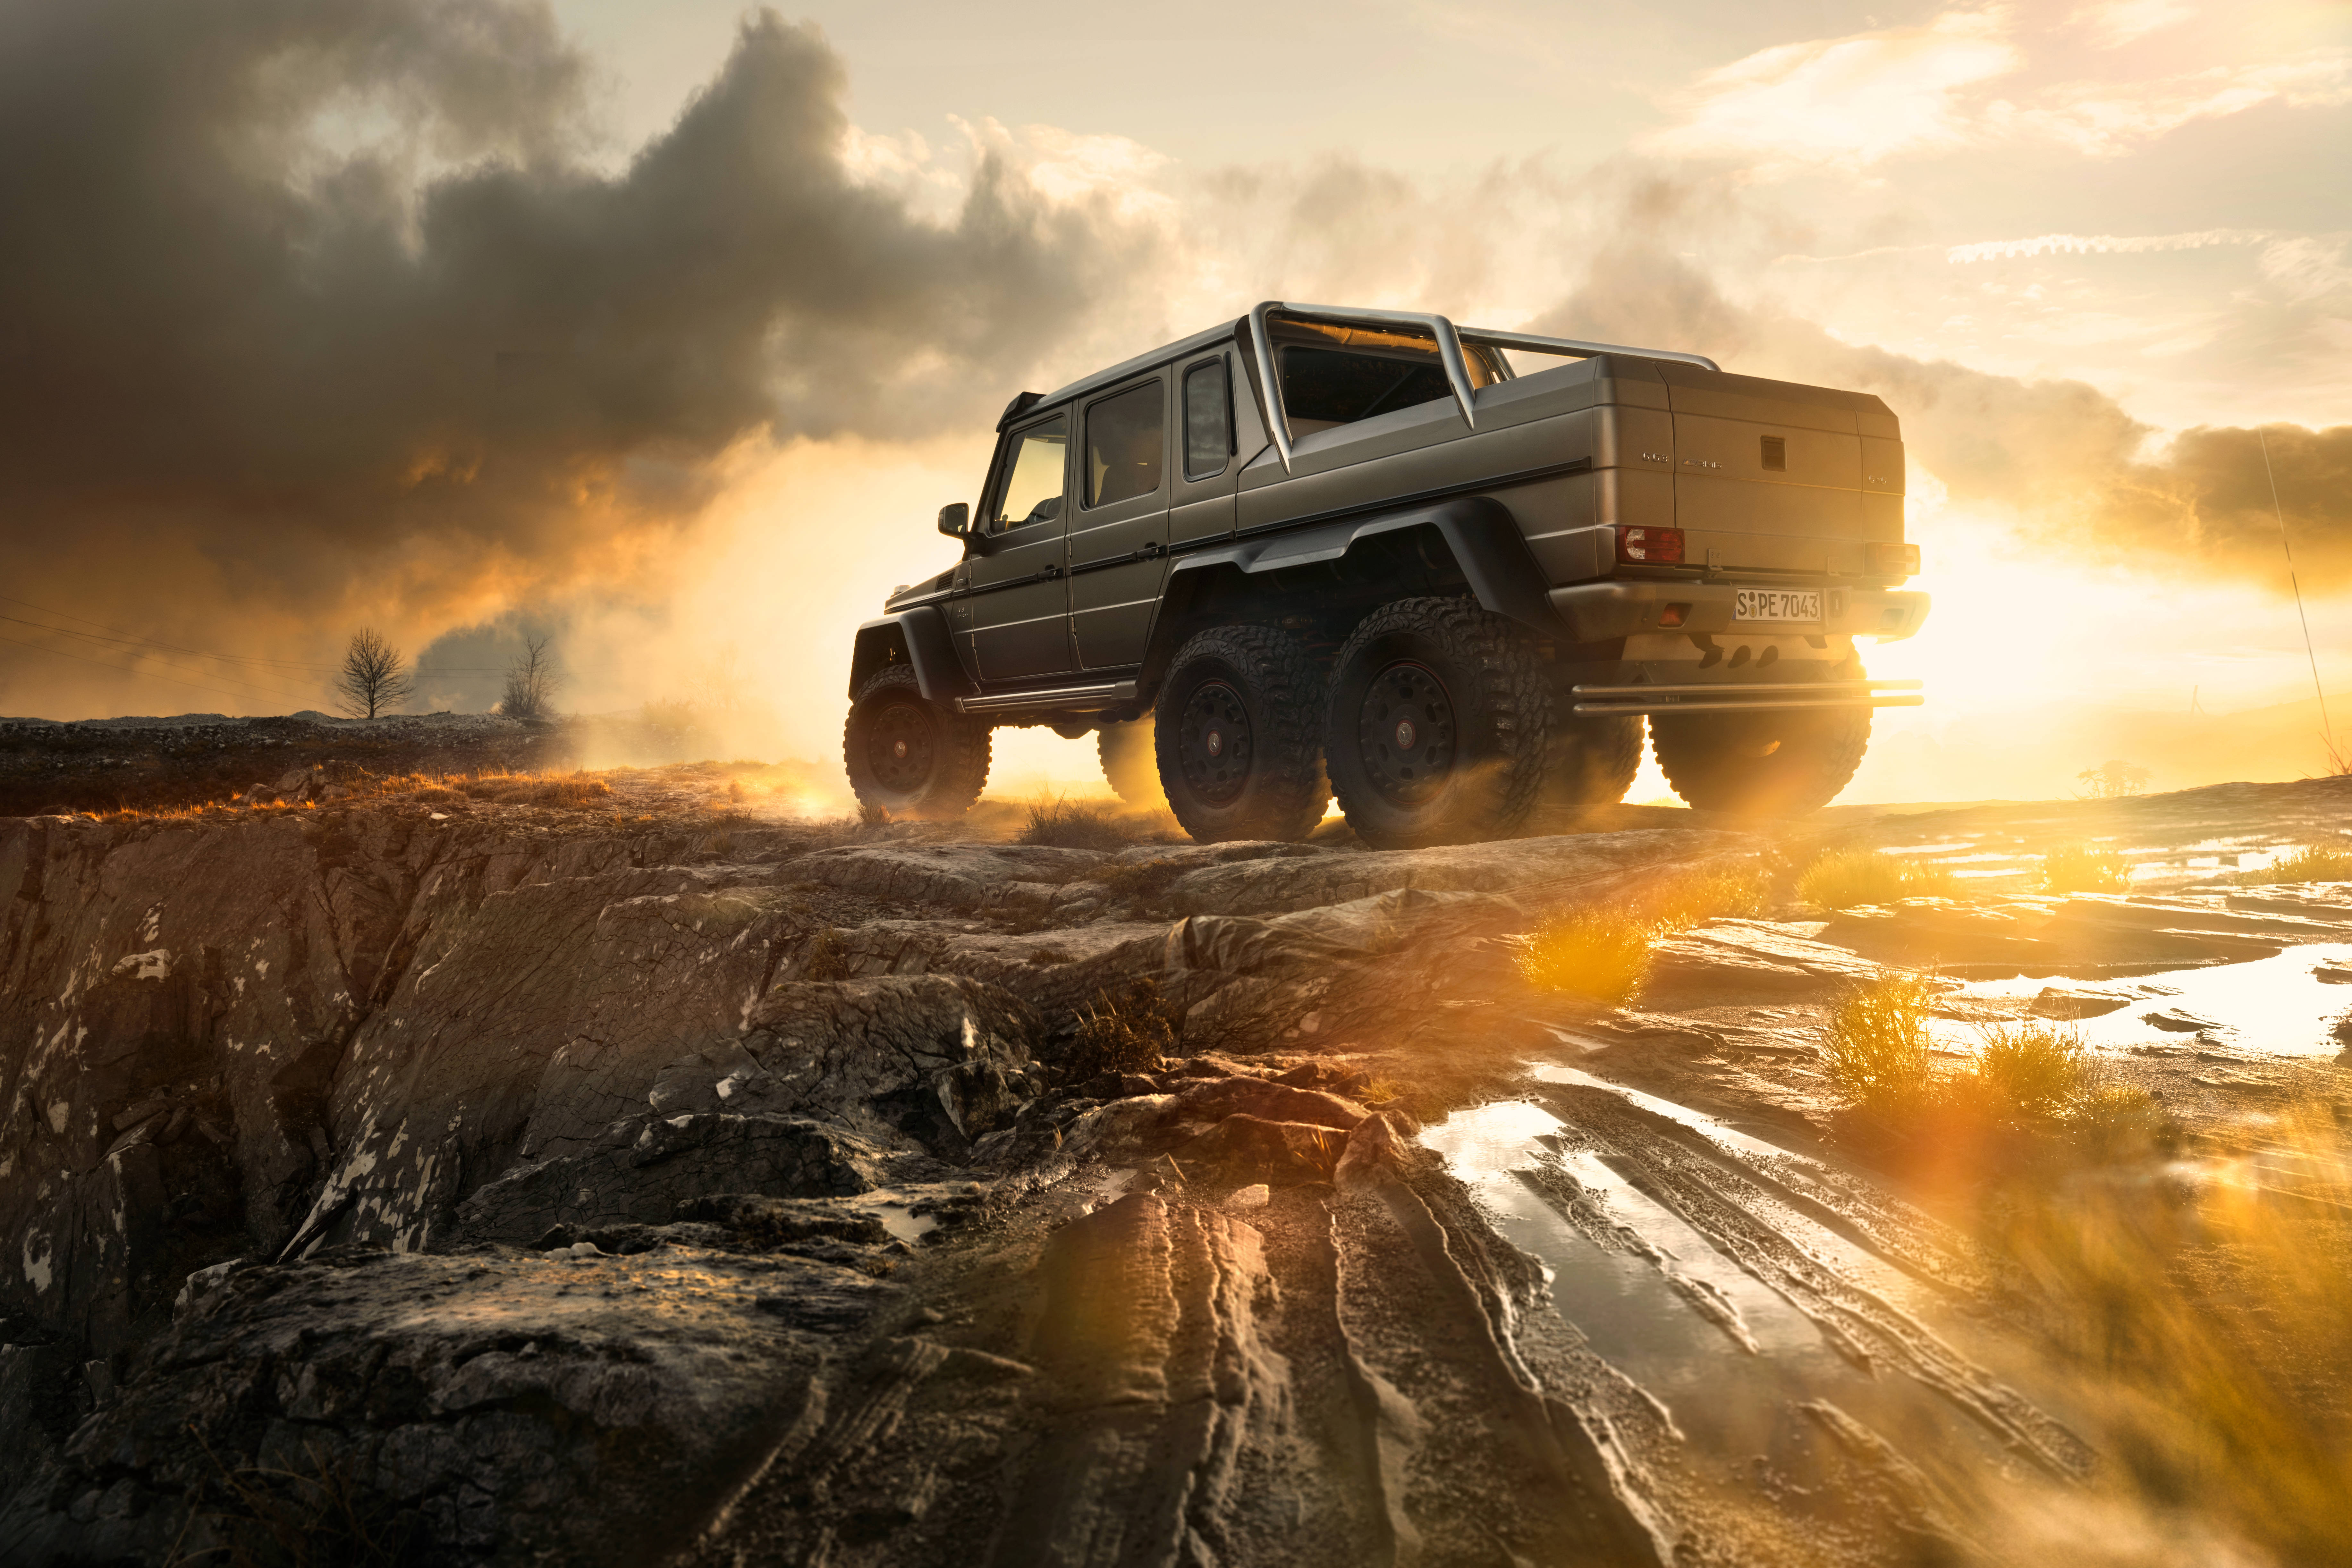 Mercedes Benz Amg G63 6x6 8k Hd Cars 4k Wallpapers Images Backgrounds Photos And Pictures